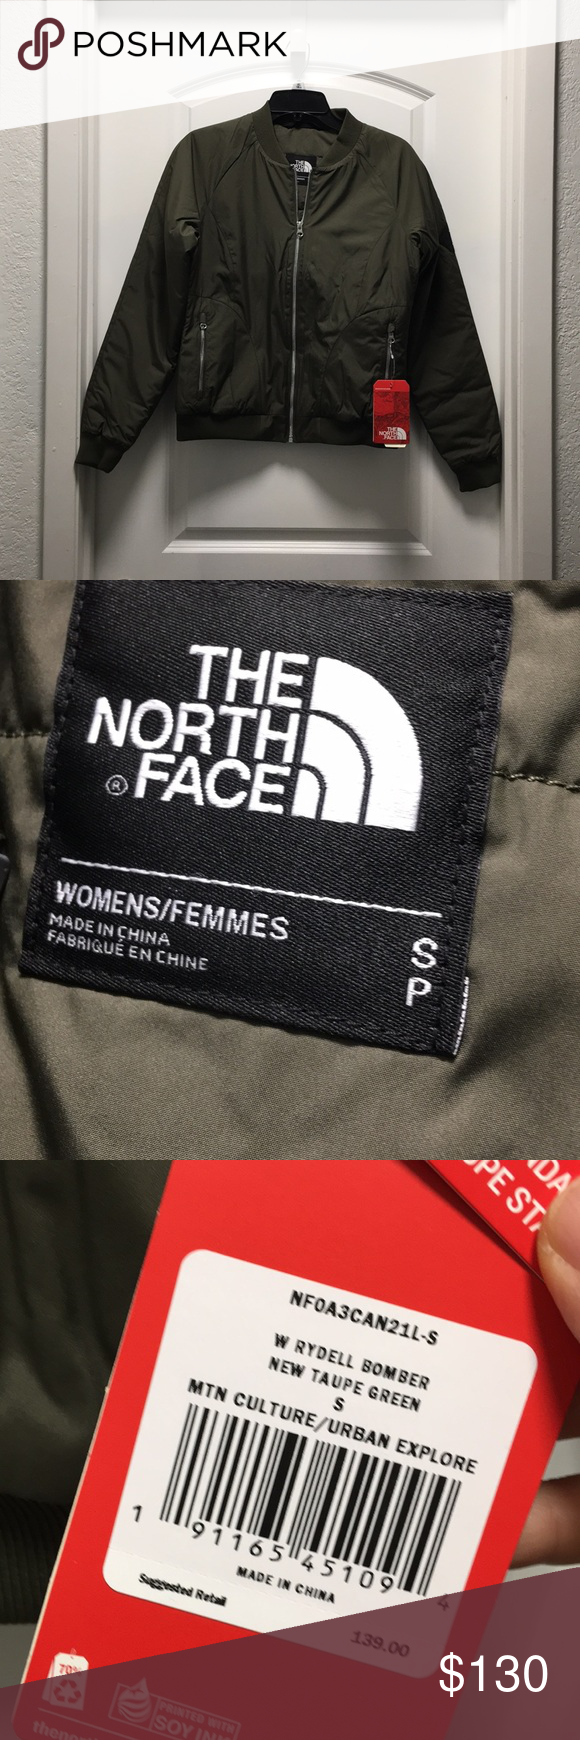 a920925cb THE NORTH FACE women's Rydell bomber jacket, NWT My favorite bomber ...